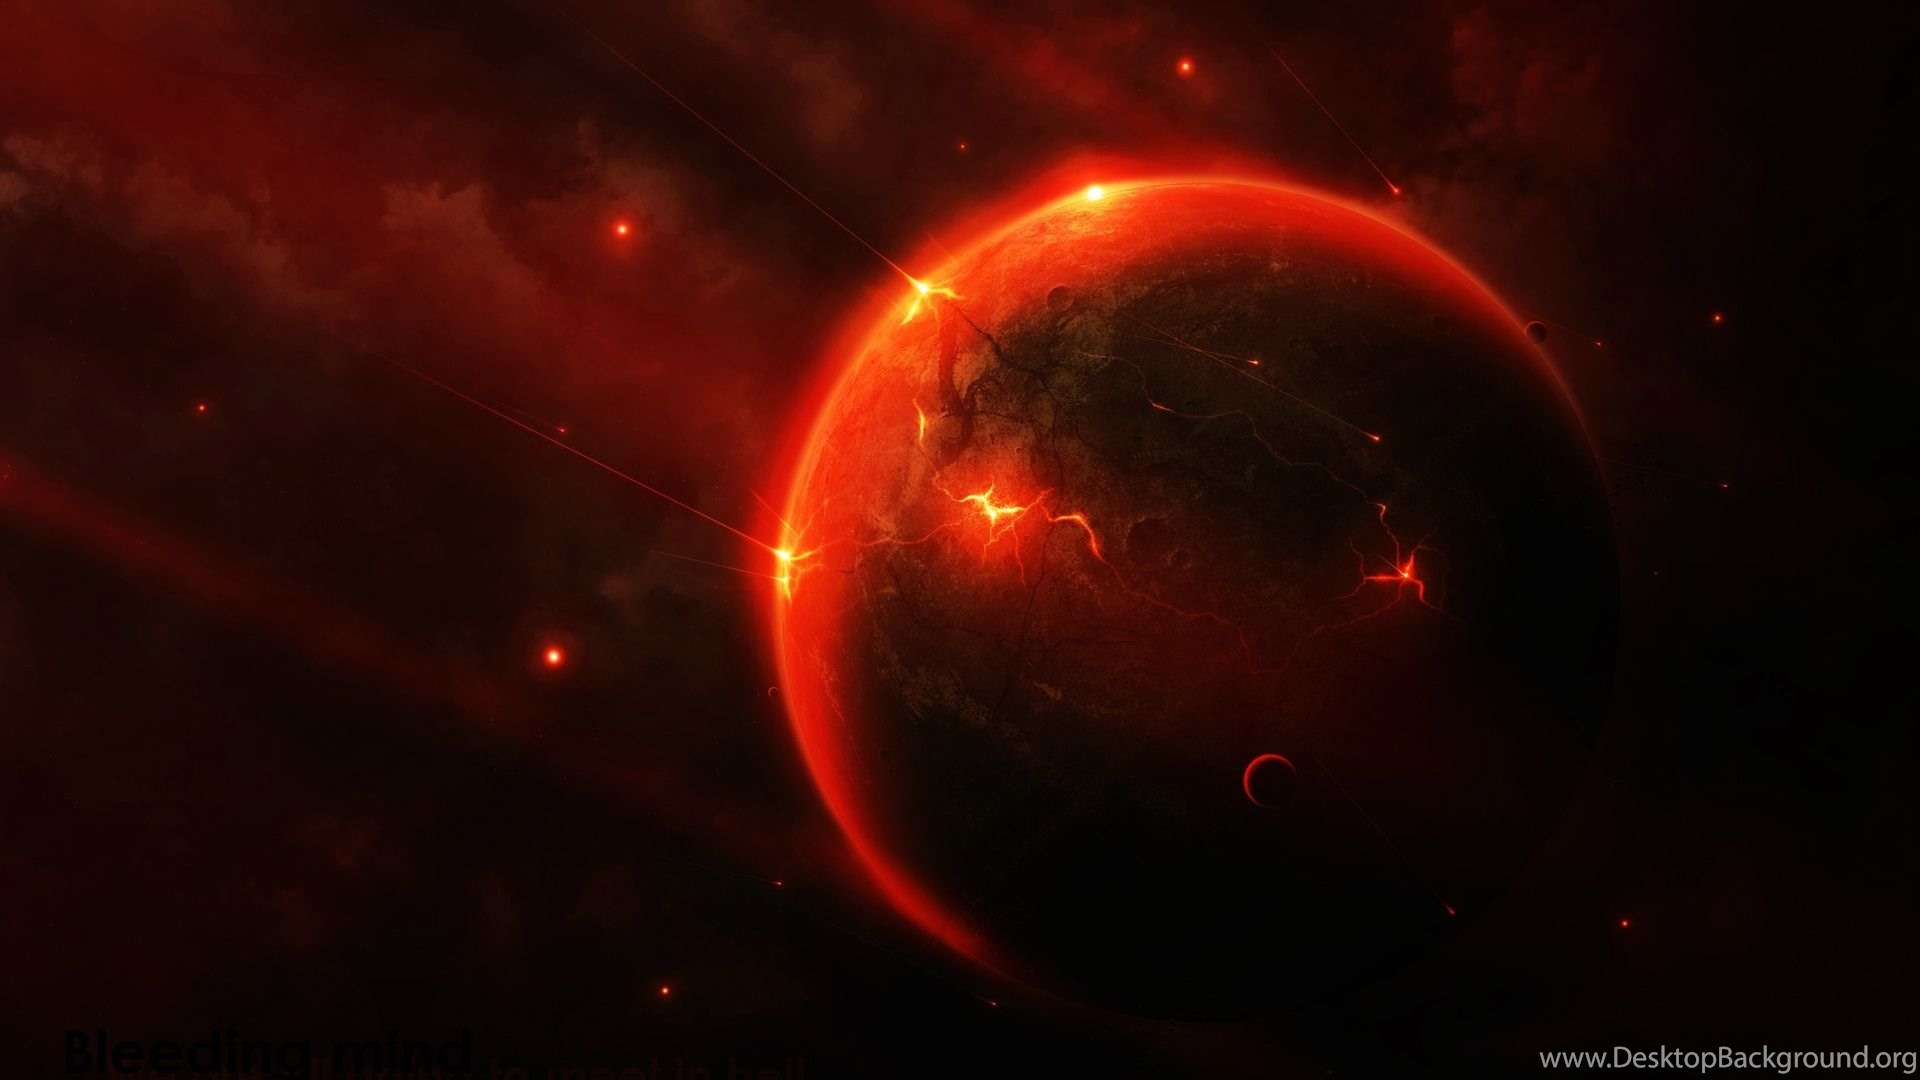 Space Hd Wallpapers The Red Planet Bliz Pix Desktop Background